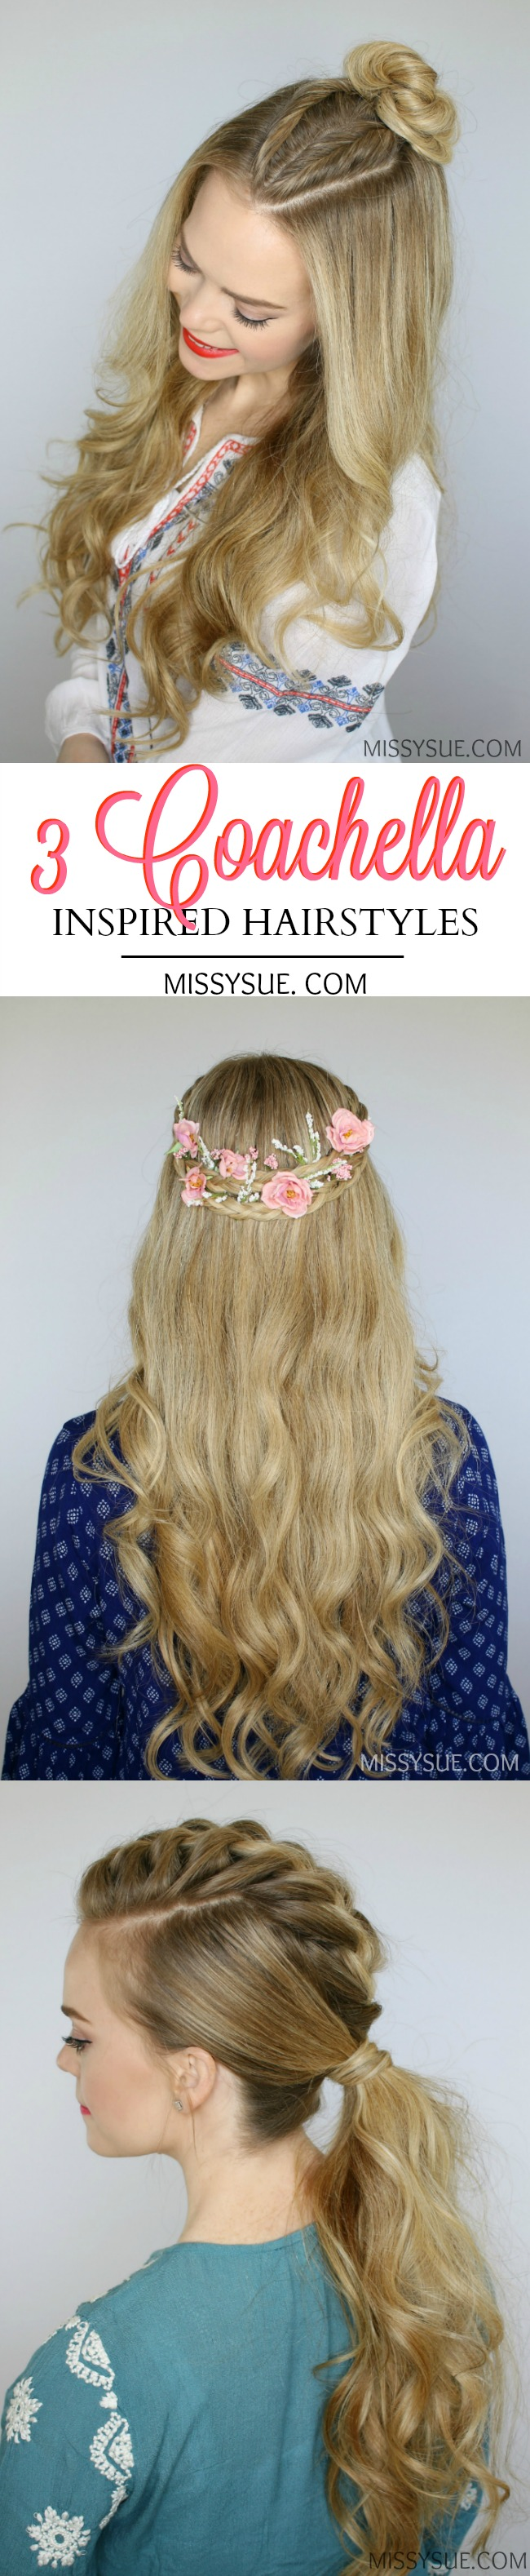 3-Coachella-inspired-hairtsyles-tutorial-missysueblog